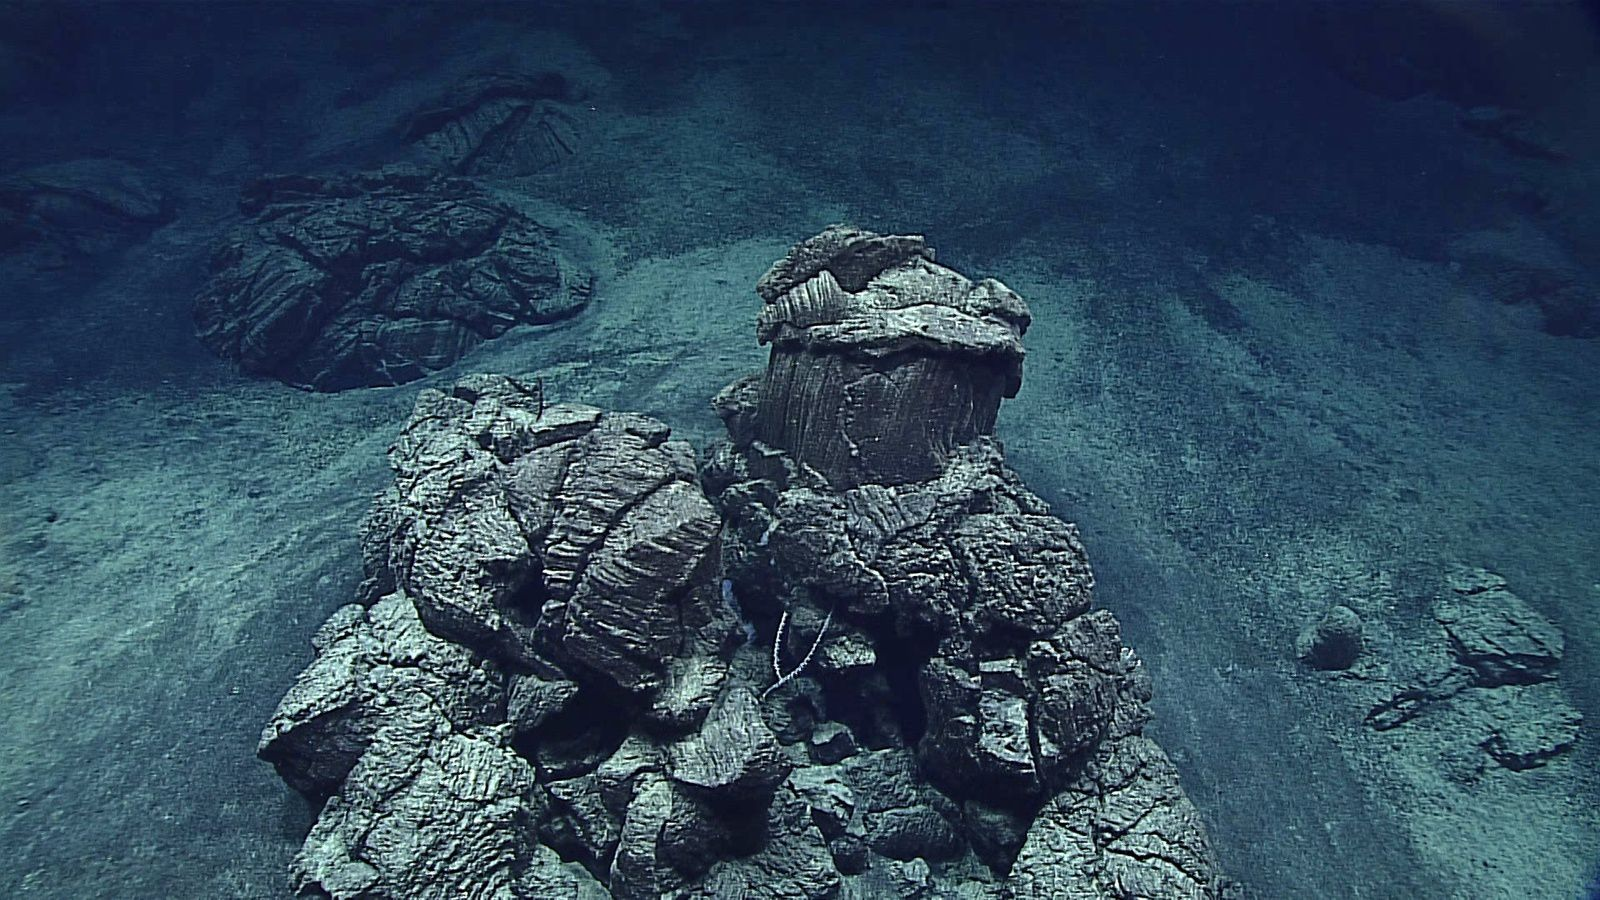 "Fina Nagu C – affleurement isolé de pillow lava entouré de sédiments, appelé "" mushroom pillow /  coussin en champignon "" - Image courtesy of NOAA Office of Ocean Exploration and Research, 2016 Deepwater Exploration of the Marianas"